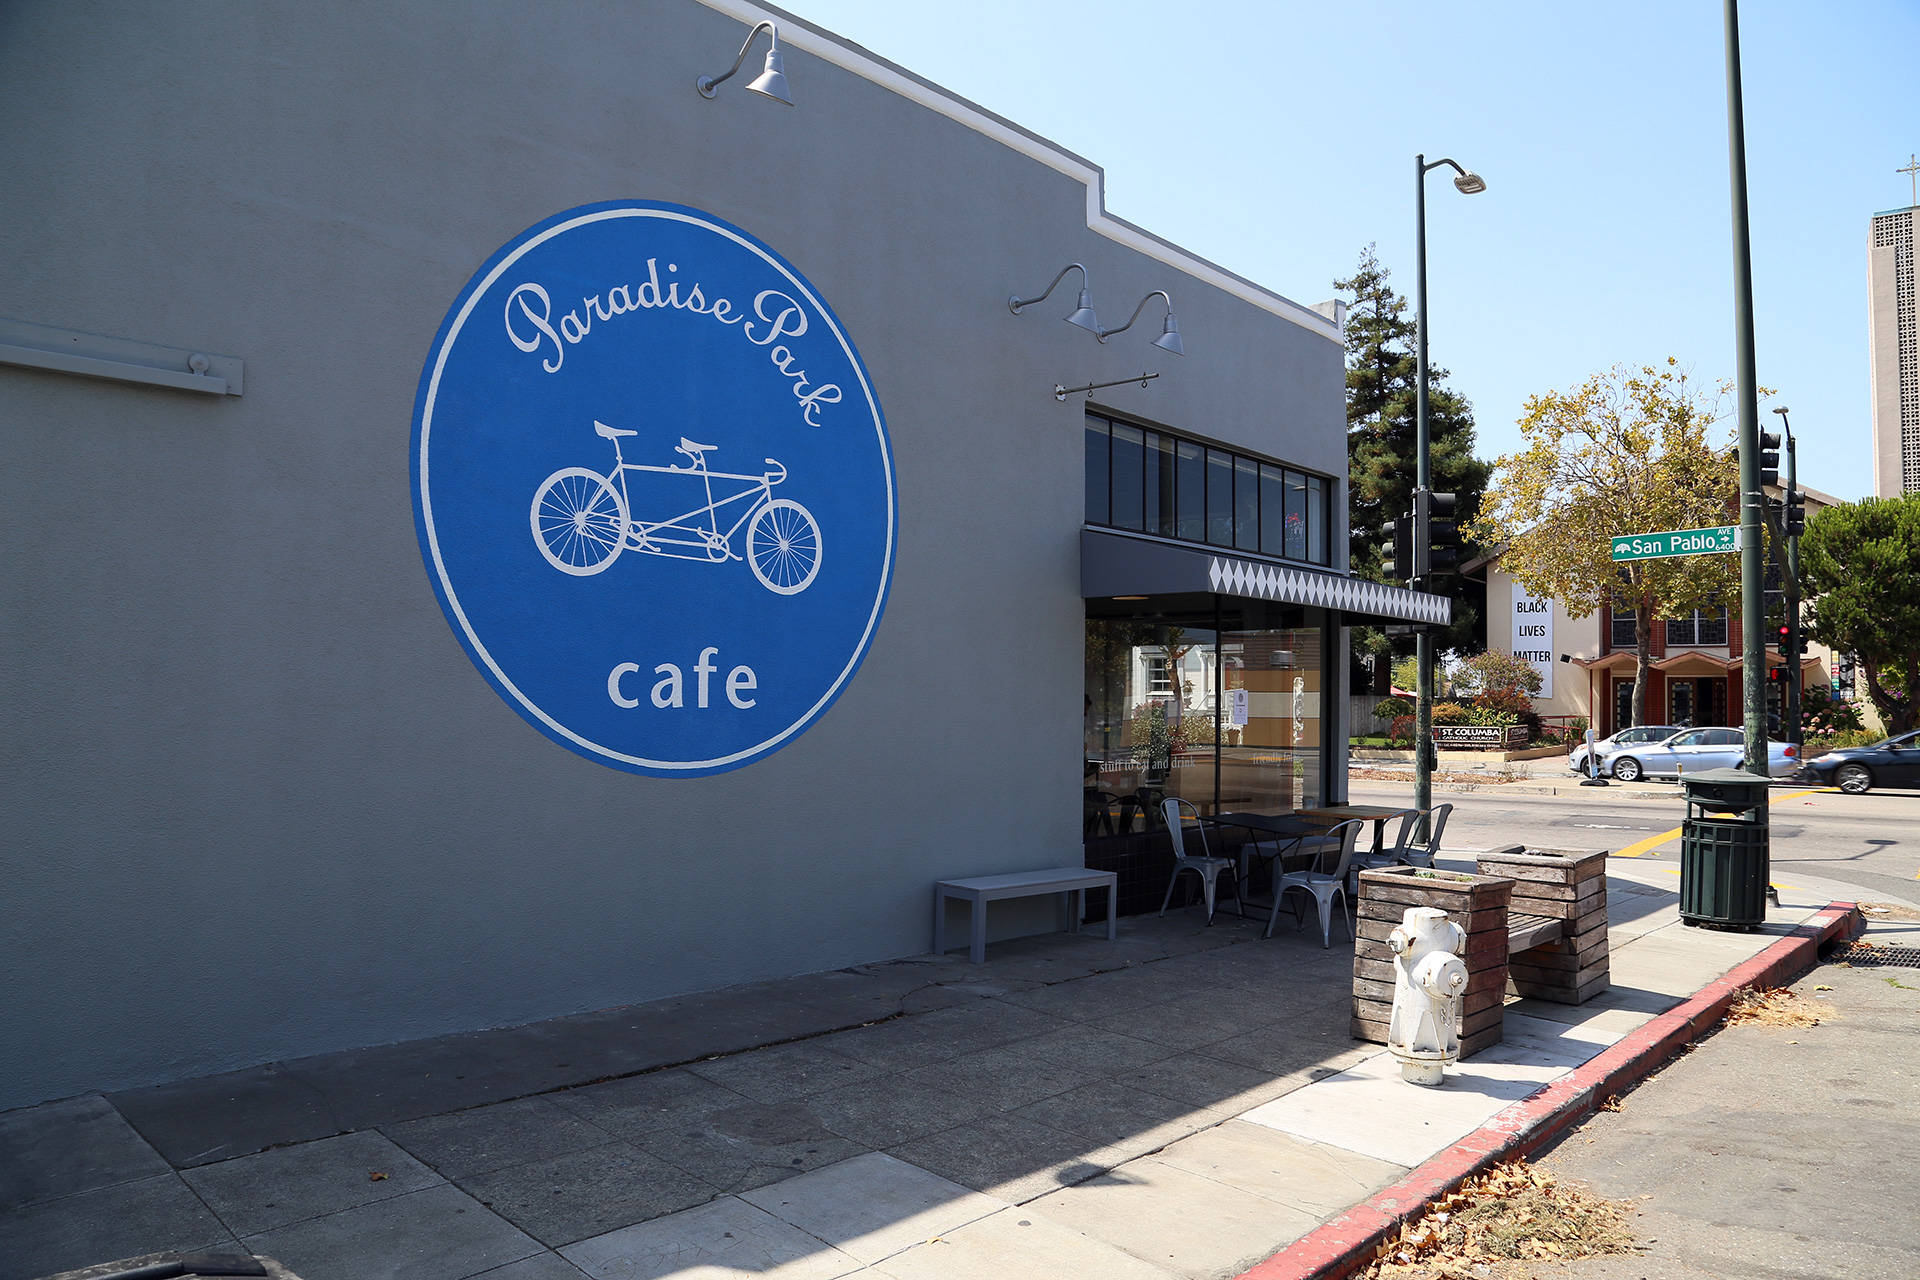 Paradise Park Café is located on San Pablo and Alcatraz in Oakland. Wendy Goodfriend